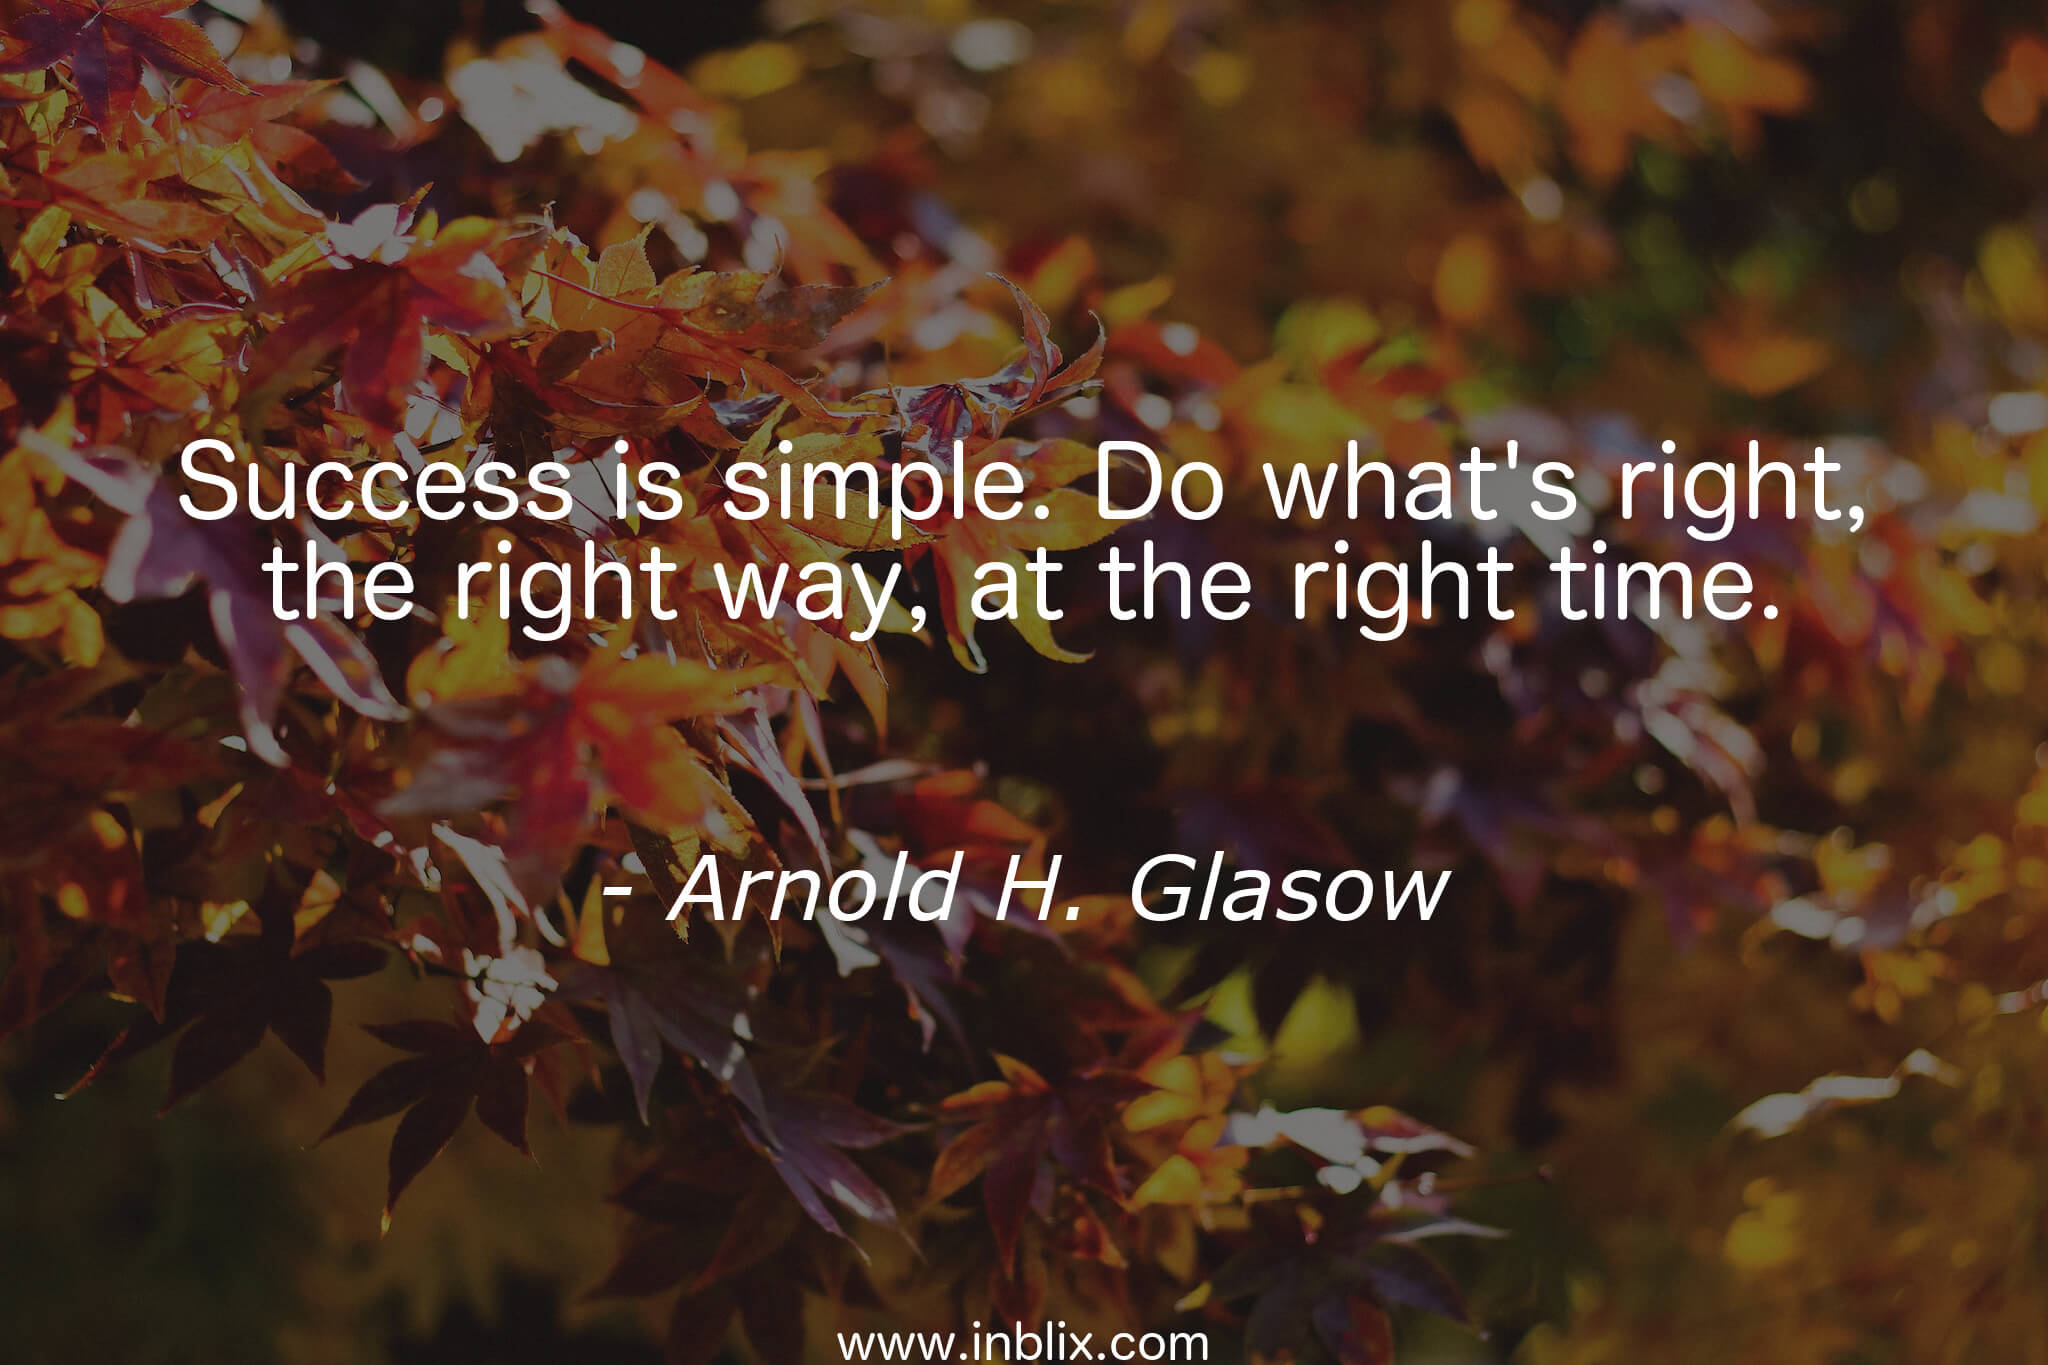 Success is simple. Do what's right, the way, at the right time.